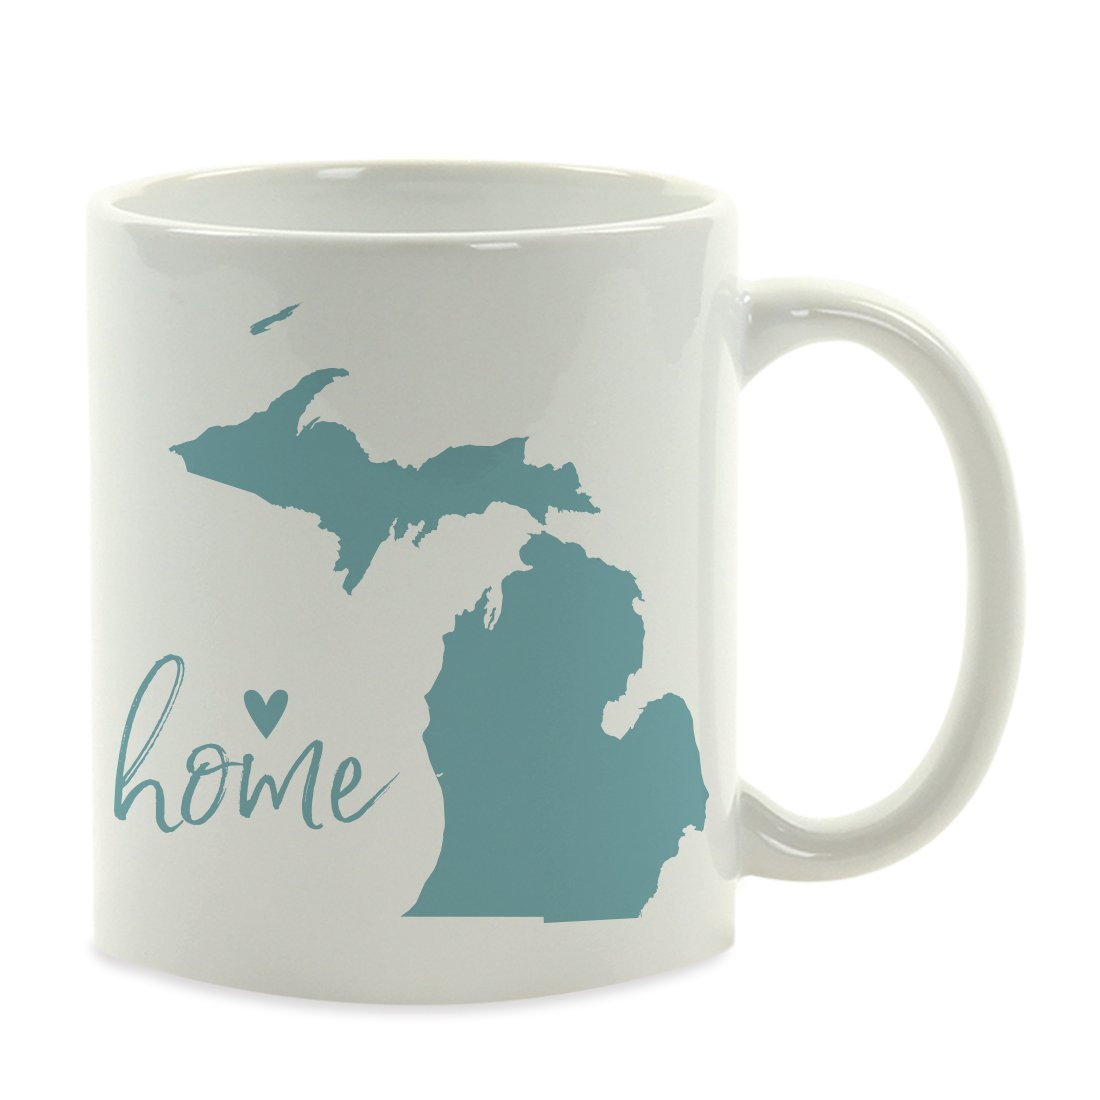 Andaz Press 11oz. US State Coffee Mug Gift, Aqua Home Heart, Michigan, 1-Pack, Unique Hostess Distance Moving Away Christmas Birthday Gifts for Her